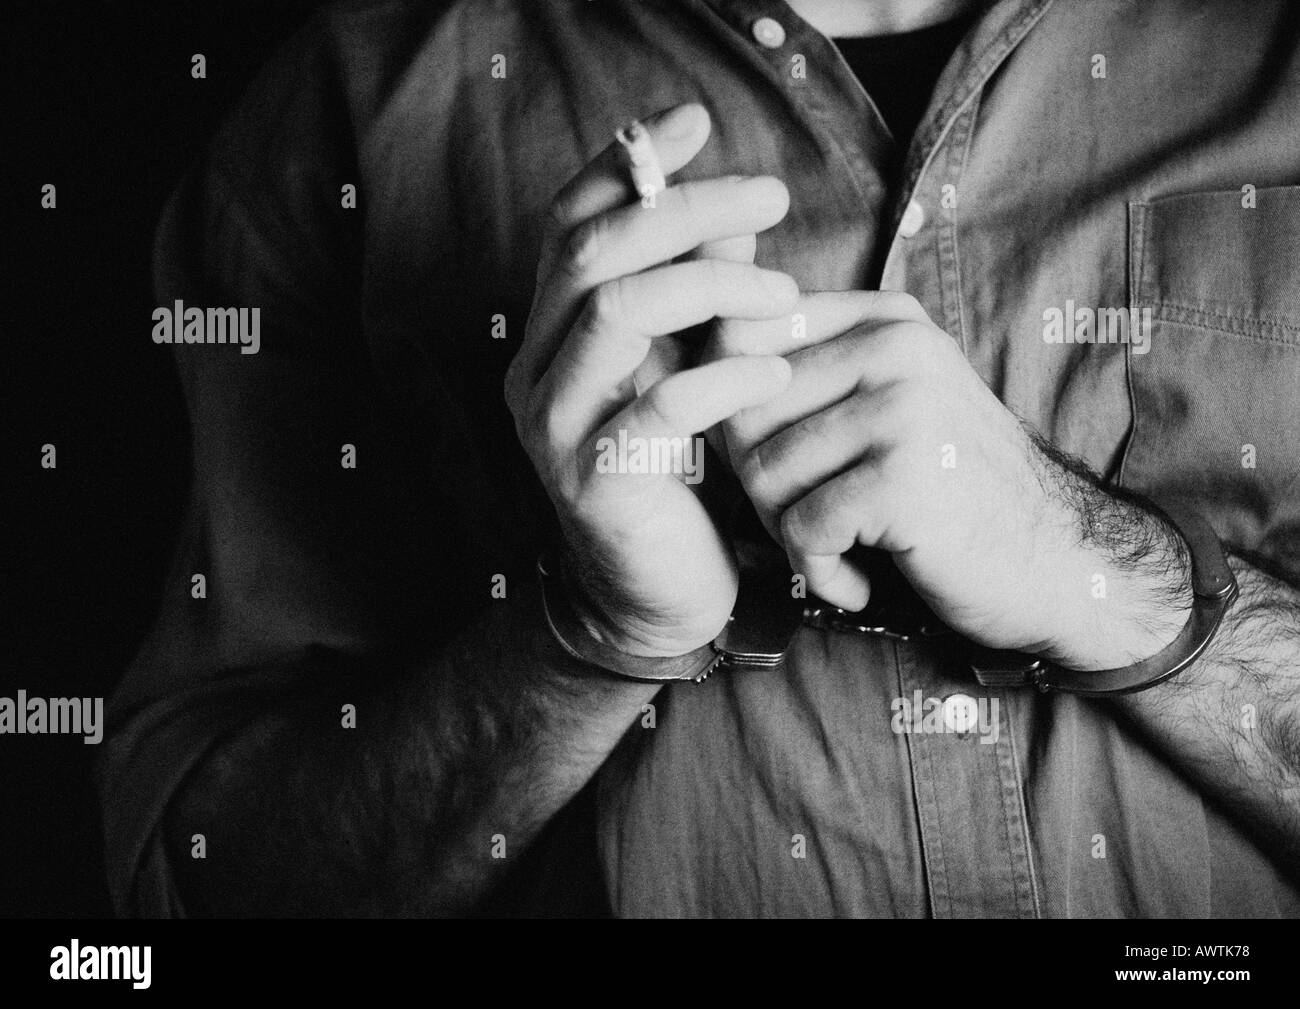 Homme portant des menottes et holding cigarette, close-up, b&w Photo Stock